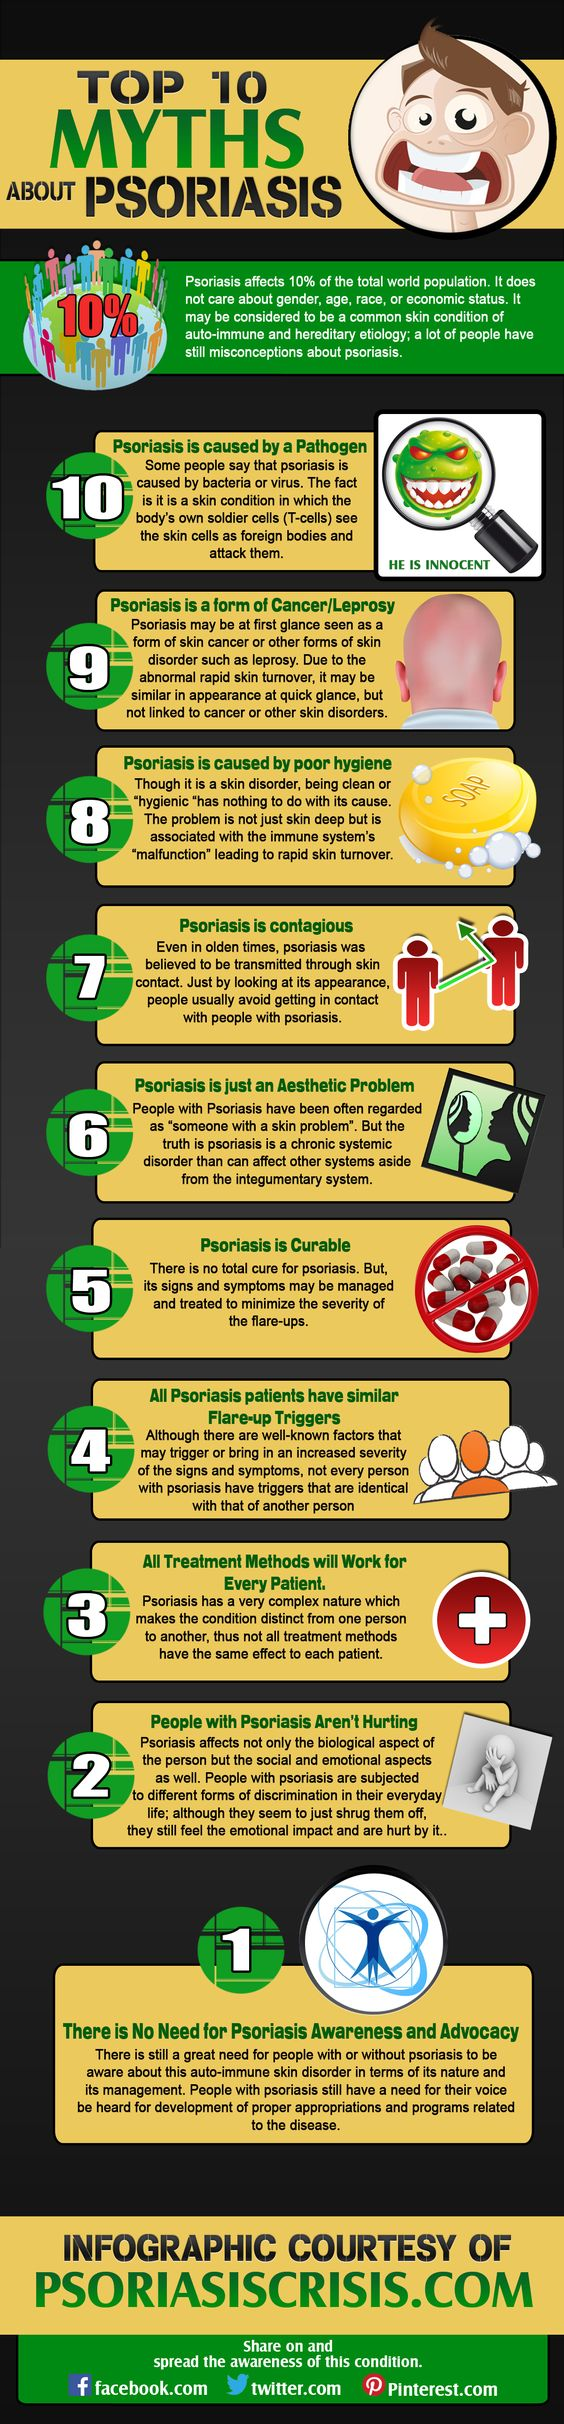 Psoriasis affects 10% of the total world population. It does not care about gender, age, race, or economic status. It may be considered to be a common skin condition of auto-immune and hereditary etiology; a lot of people have still misconceptions about psoriasis. Here is an #Infographic about the #myths of #Psoriasis: